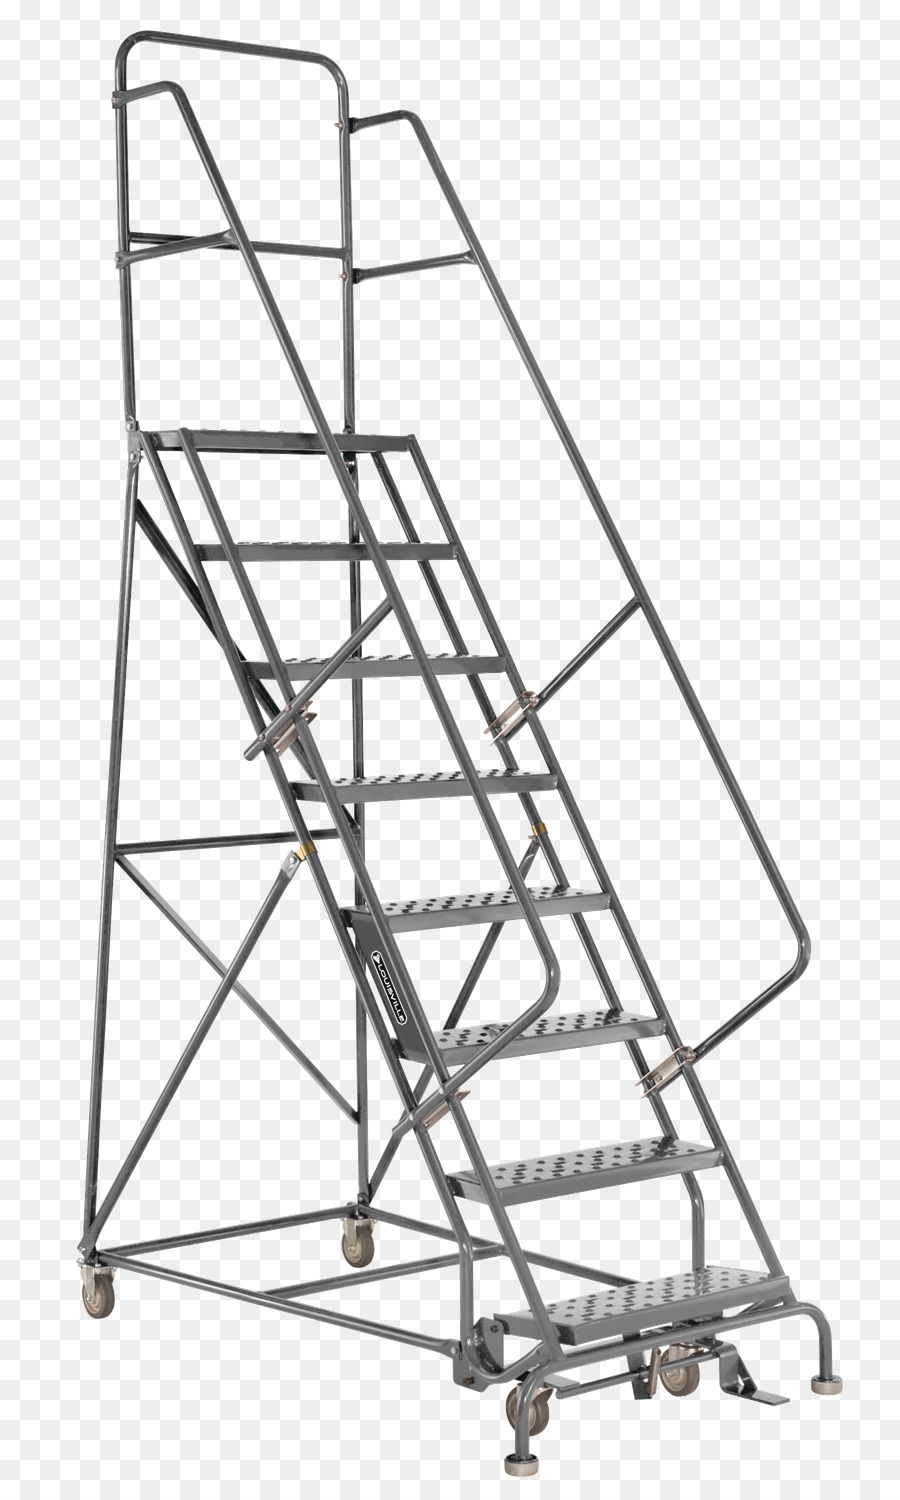 Ladder Stairs Warehouse Rolling Handrail   Ladders